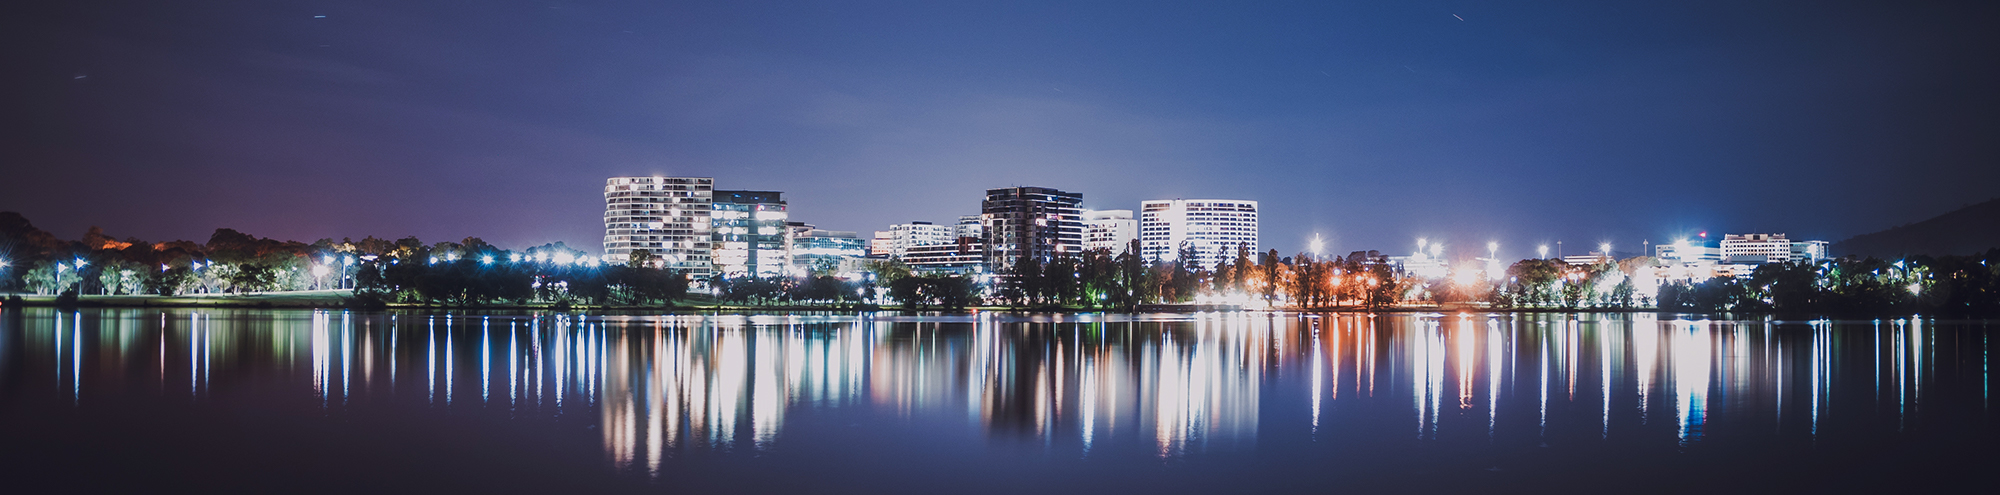 Image of the Canberra skyline at night with city lights reflecting off Lake Burley Griffin